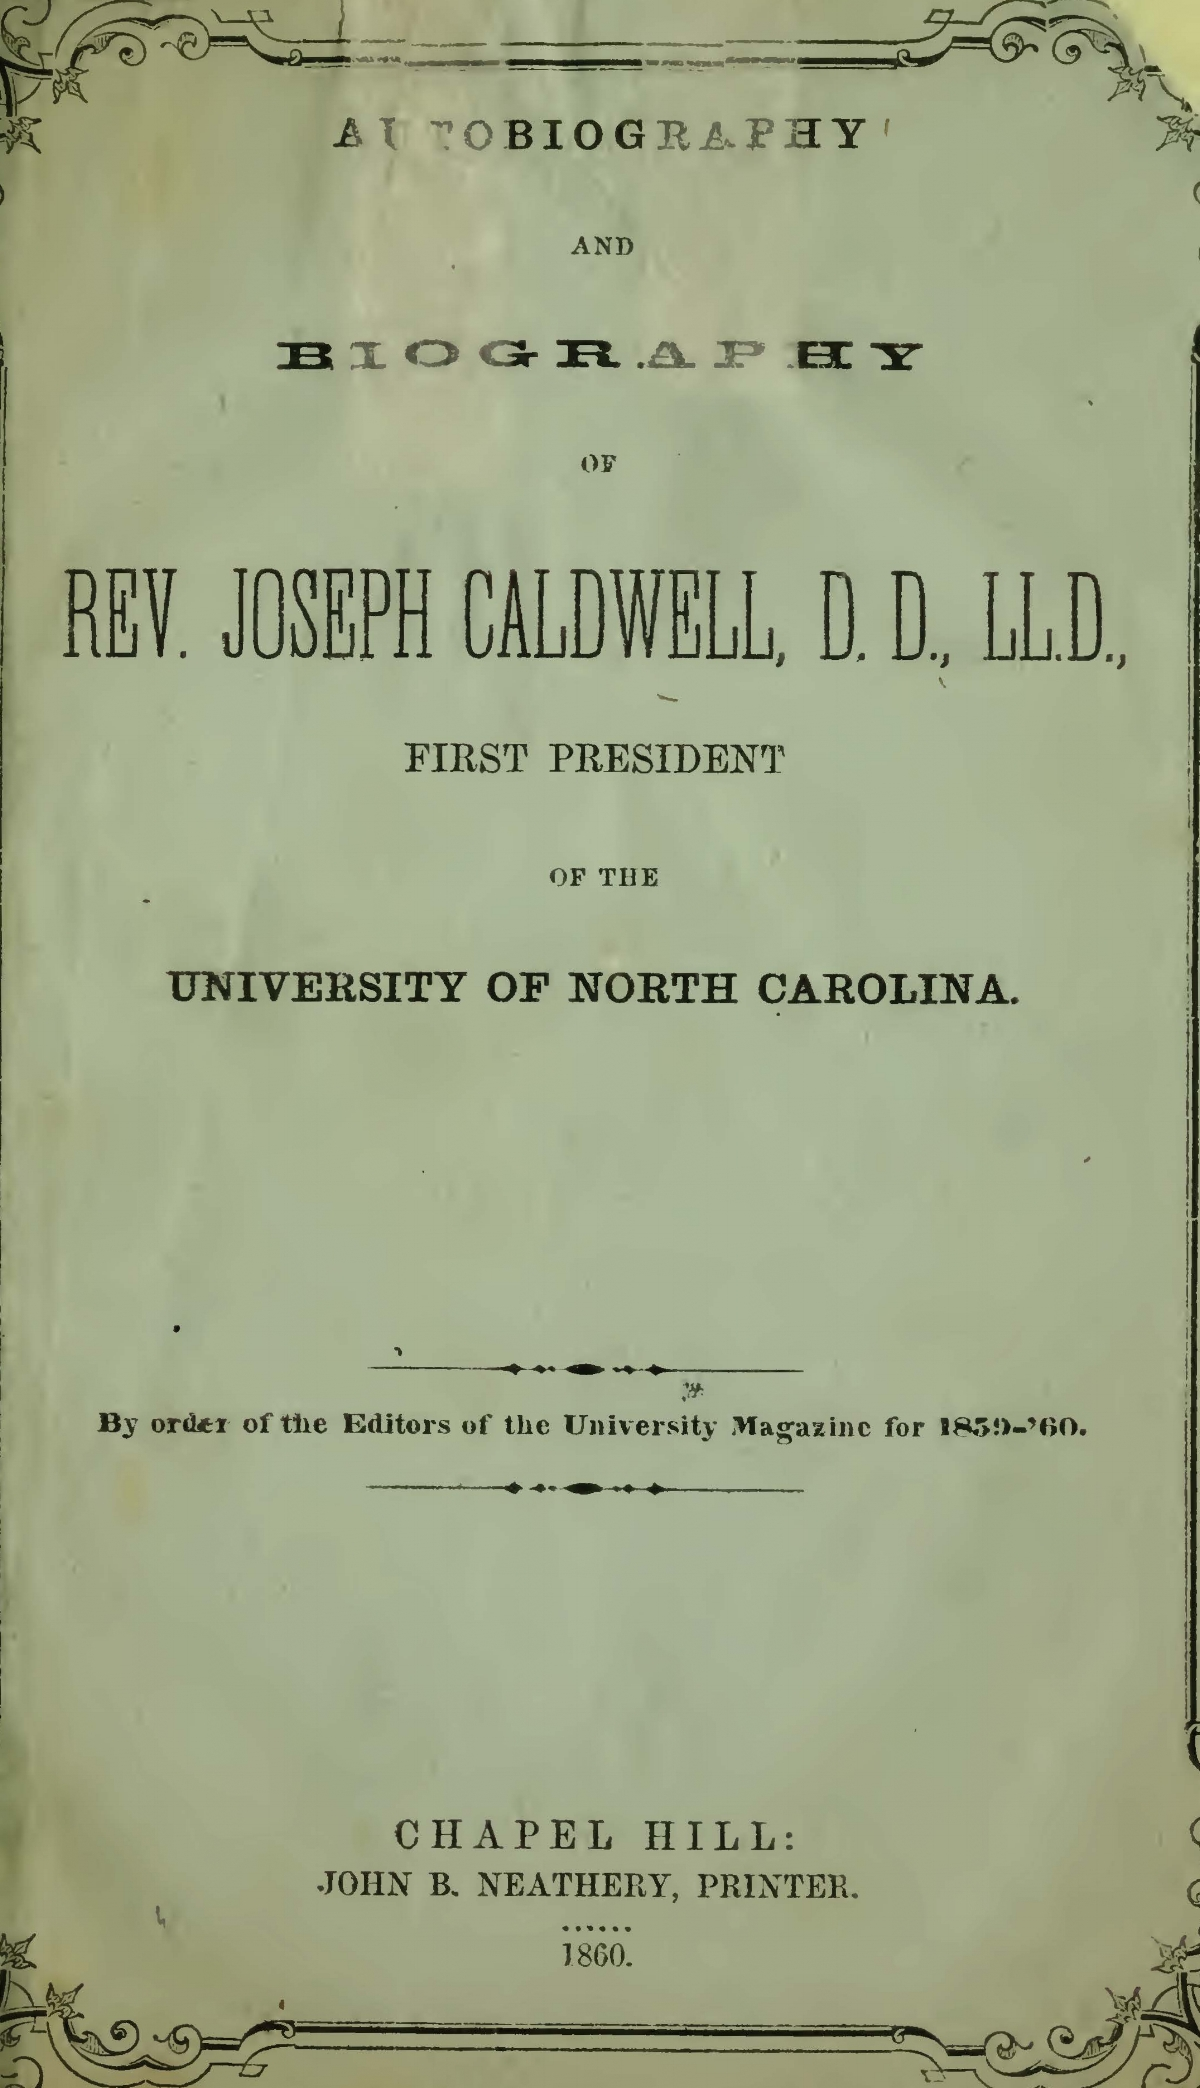 Caldwell, Joseph, Autobiography and Biography Title Page.jpg